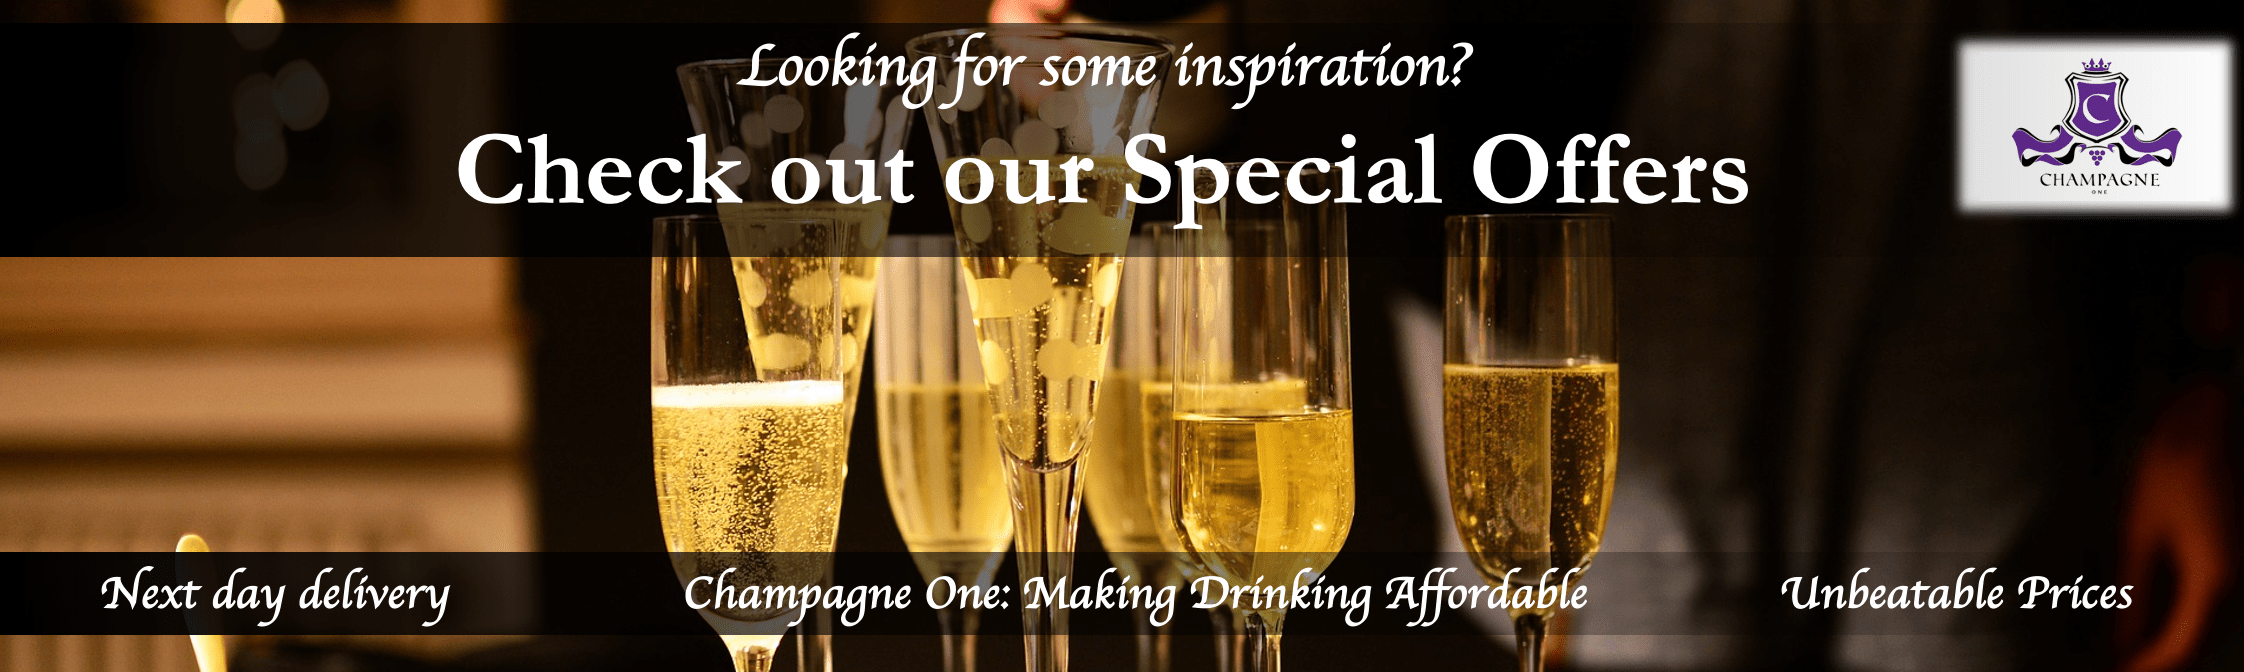 Special Offers from Champagne One